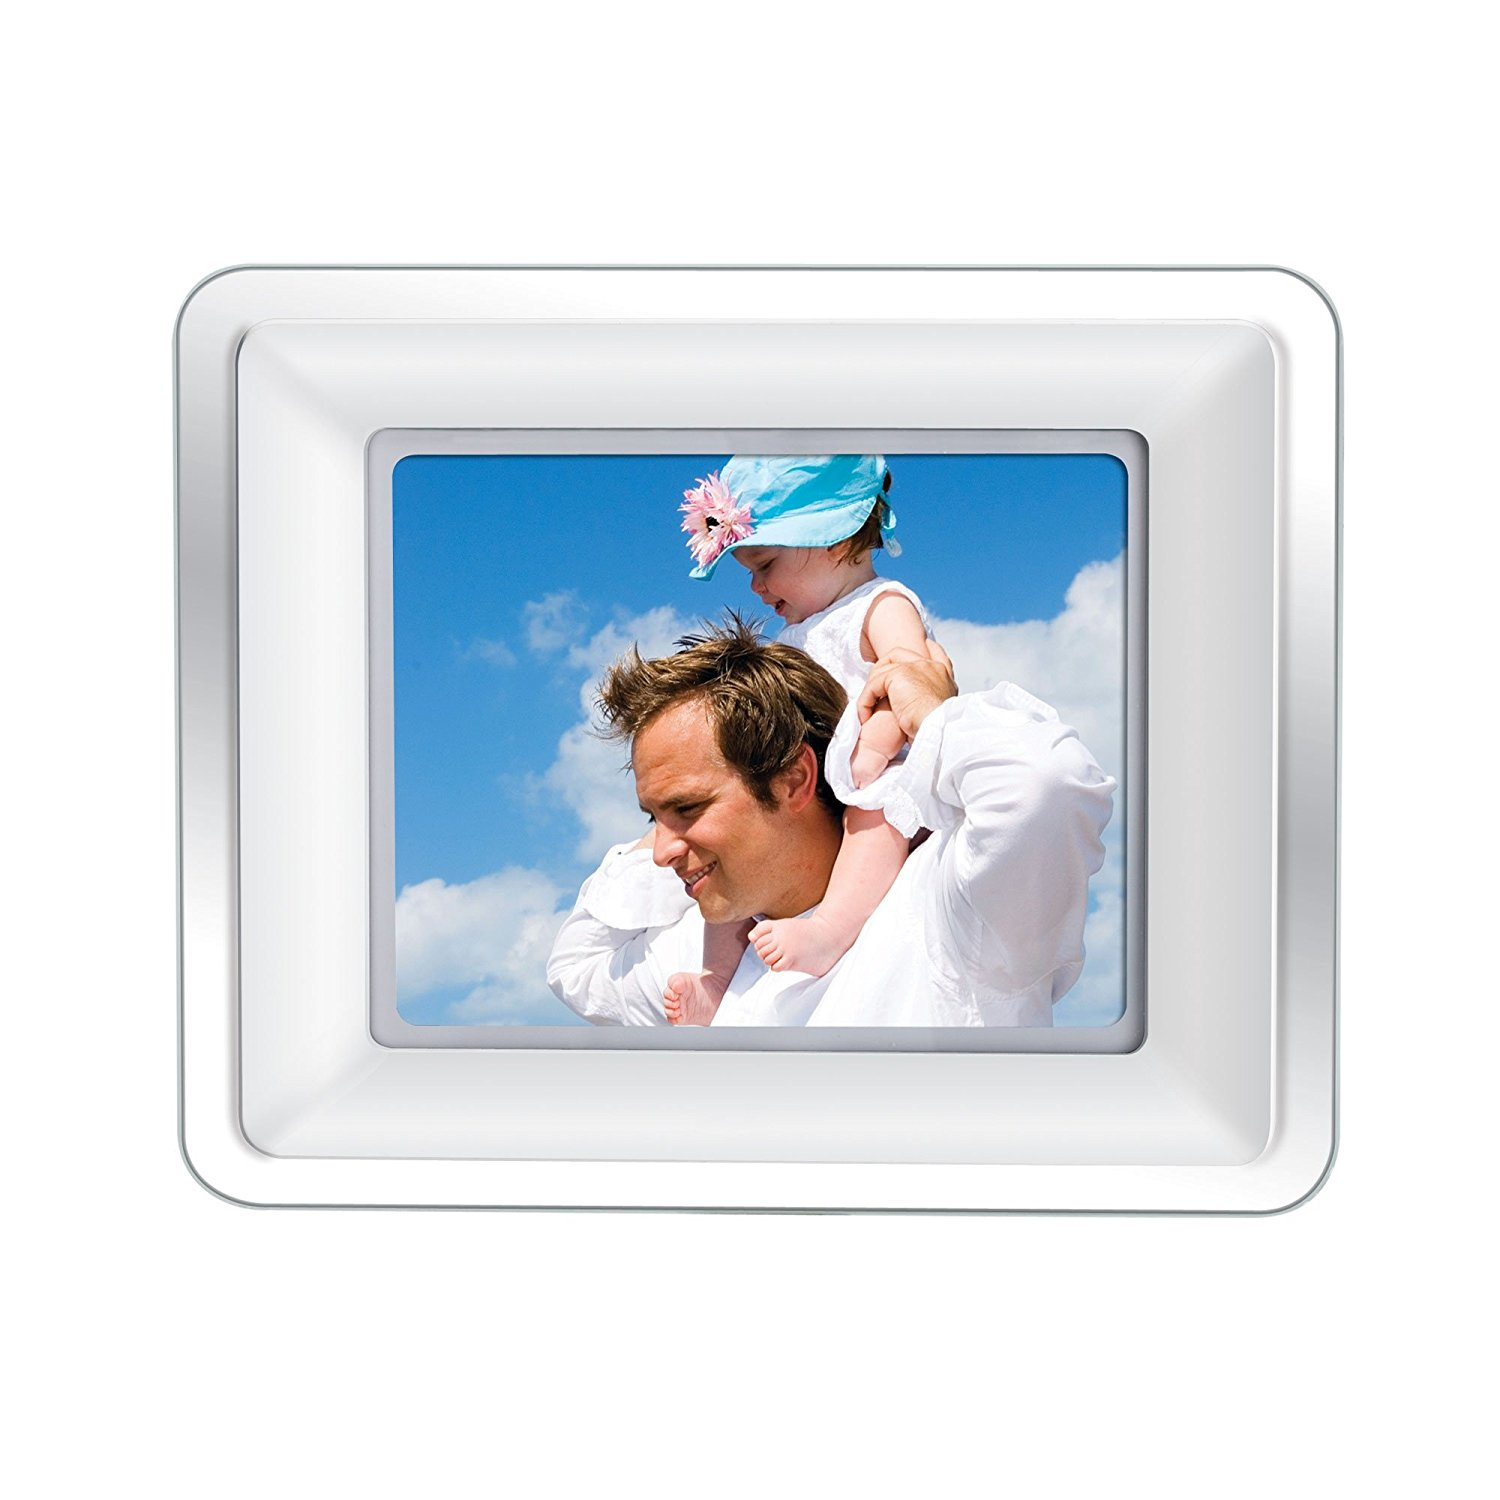 Cheap Coby 8 Digital Photo Frame, find Coby 8 Digital Photo Frame ...